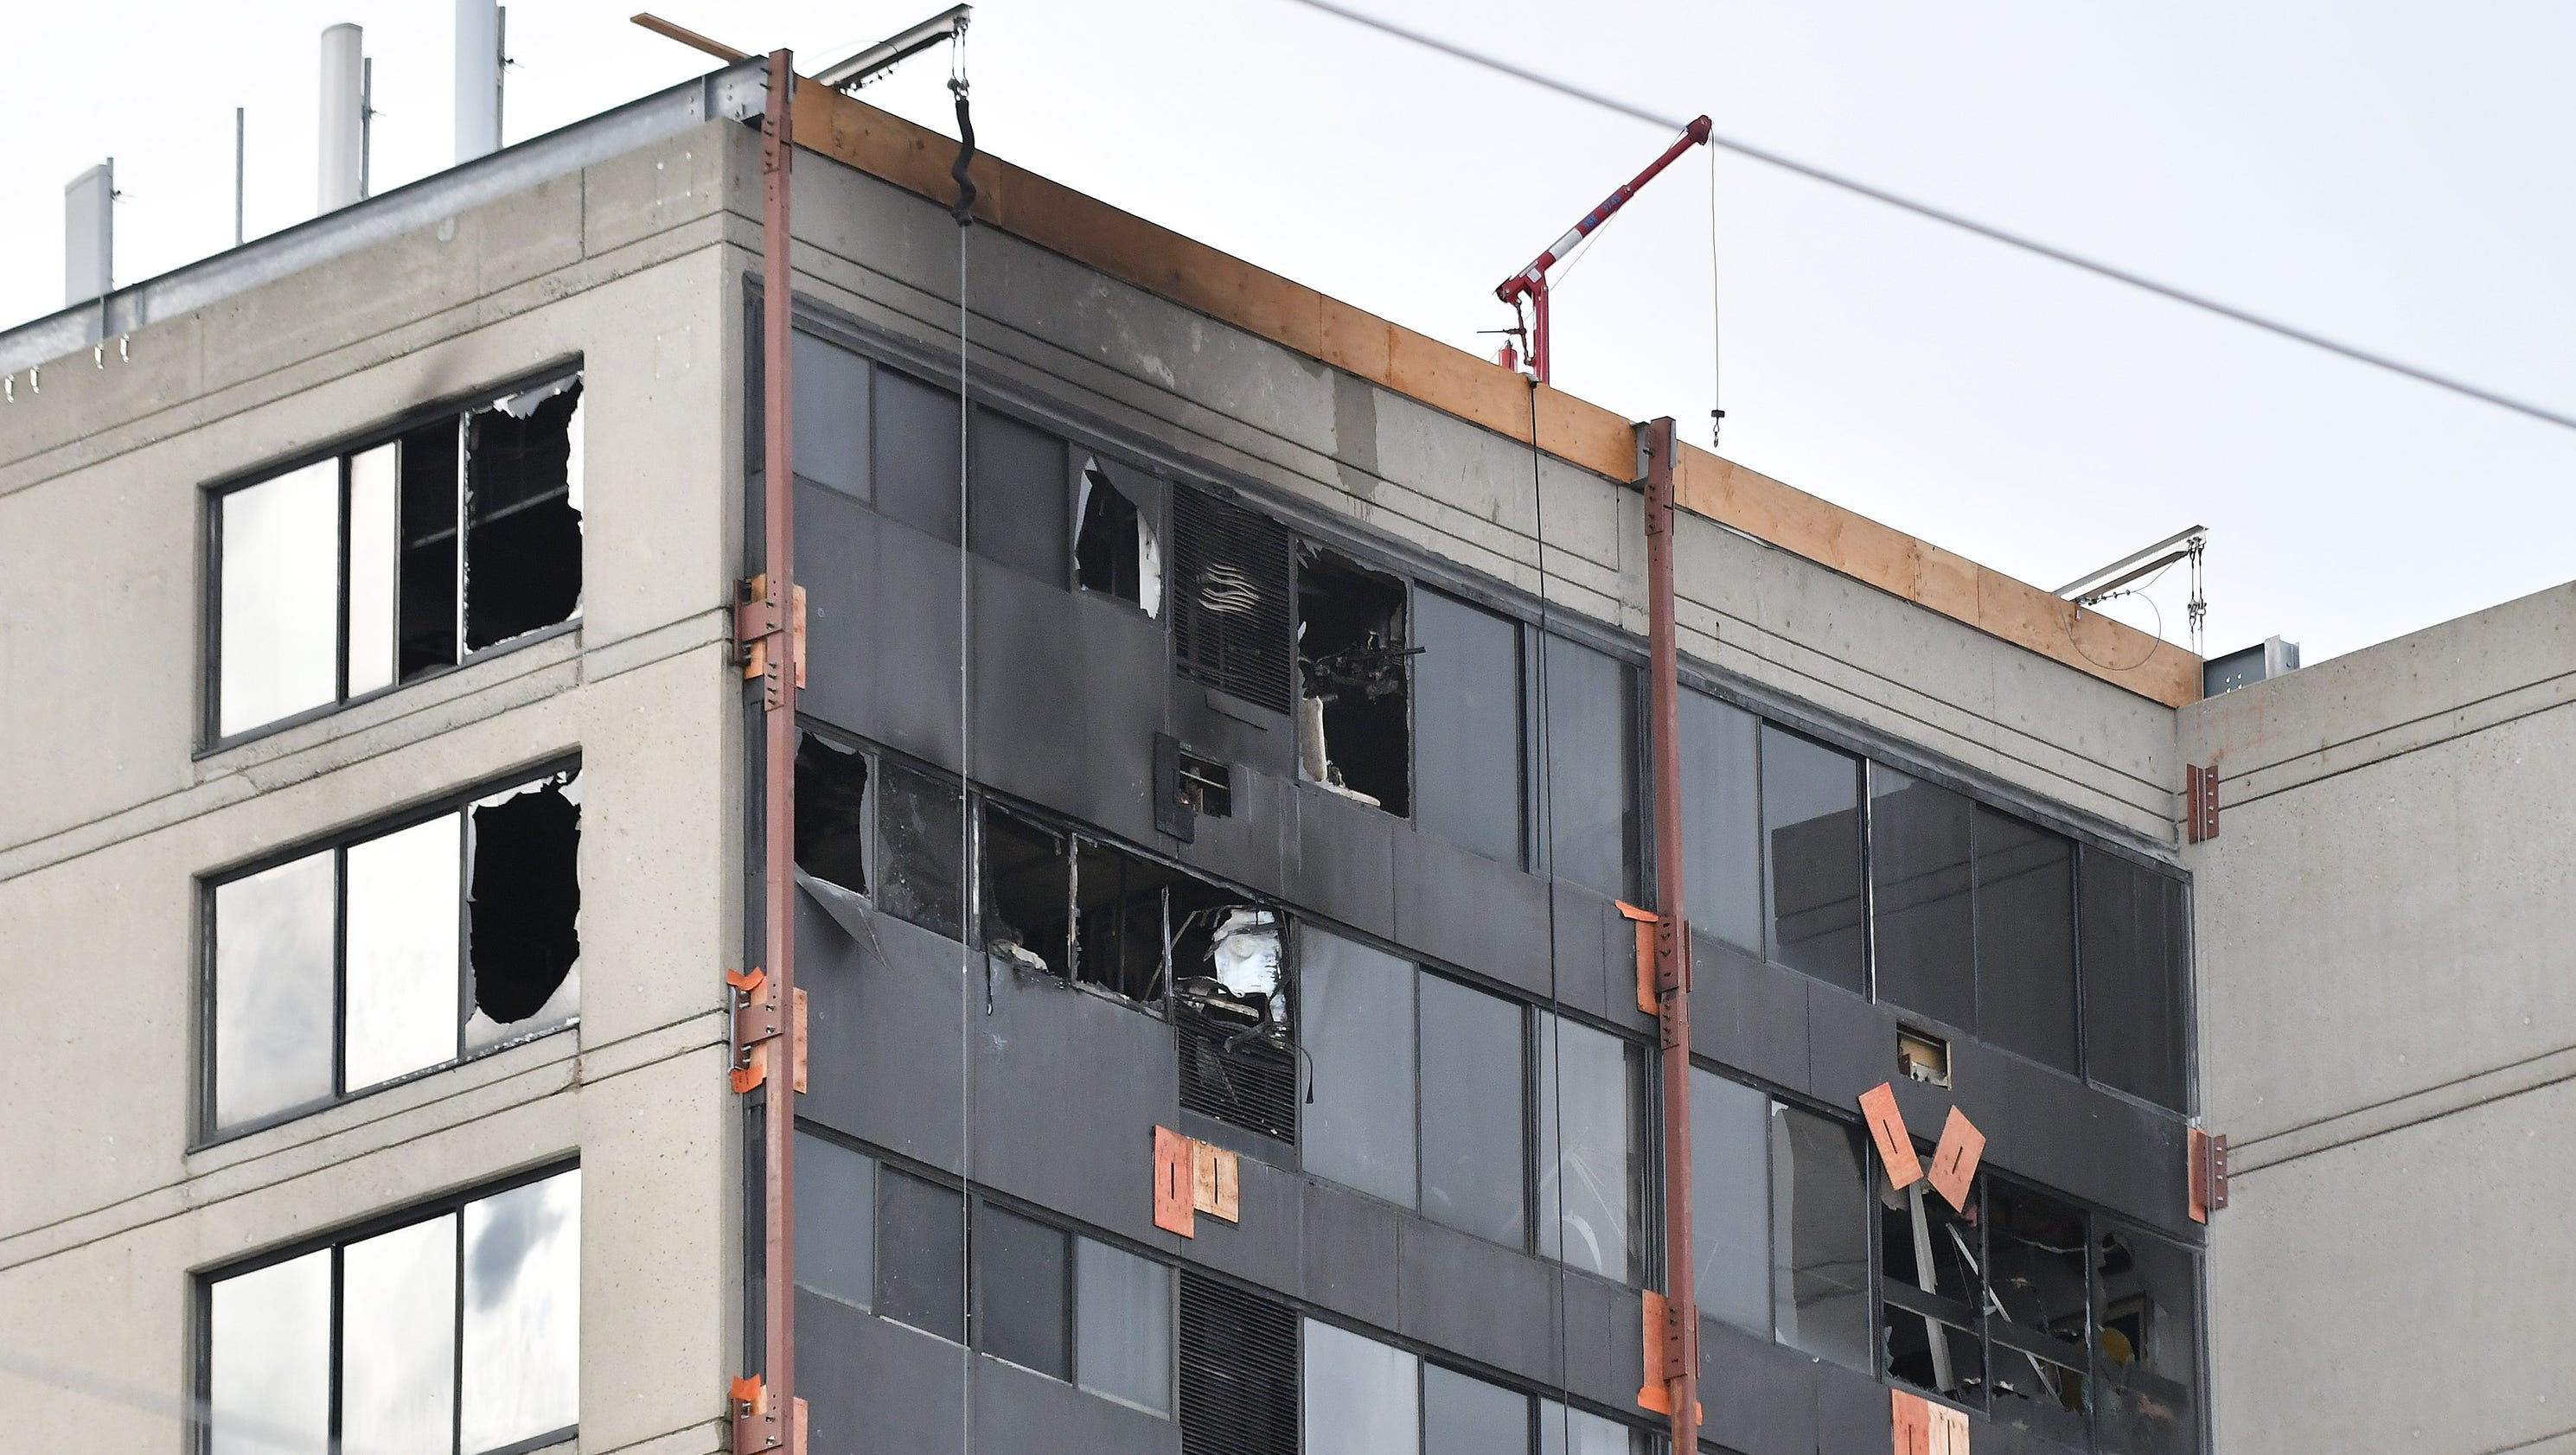 The blaze sparked on the 14th or 15th floor around 10 15 a.m. at 555 Old  Woodward 1832ed7e5